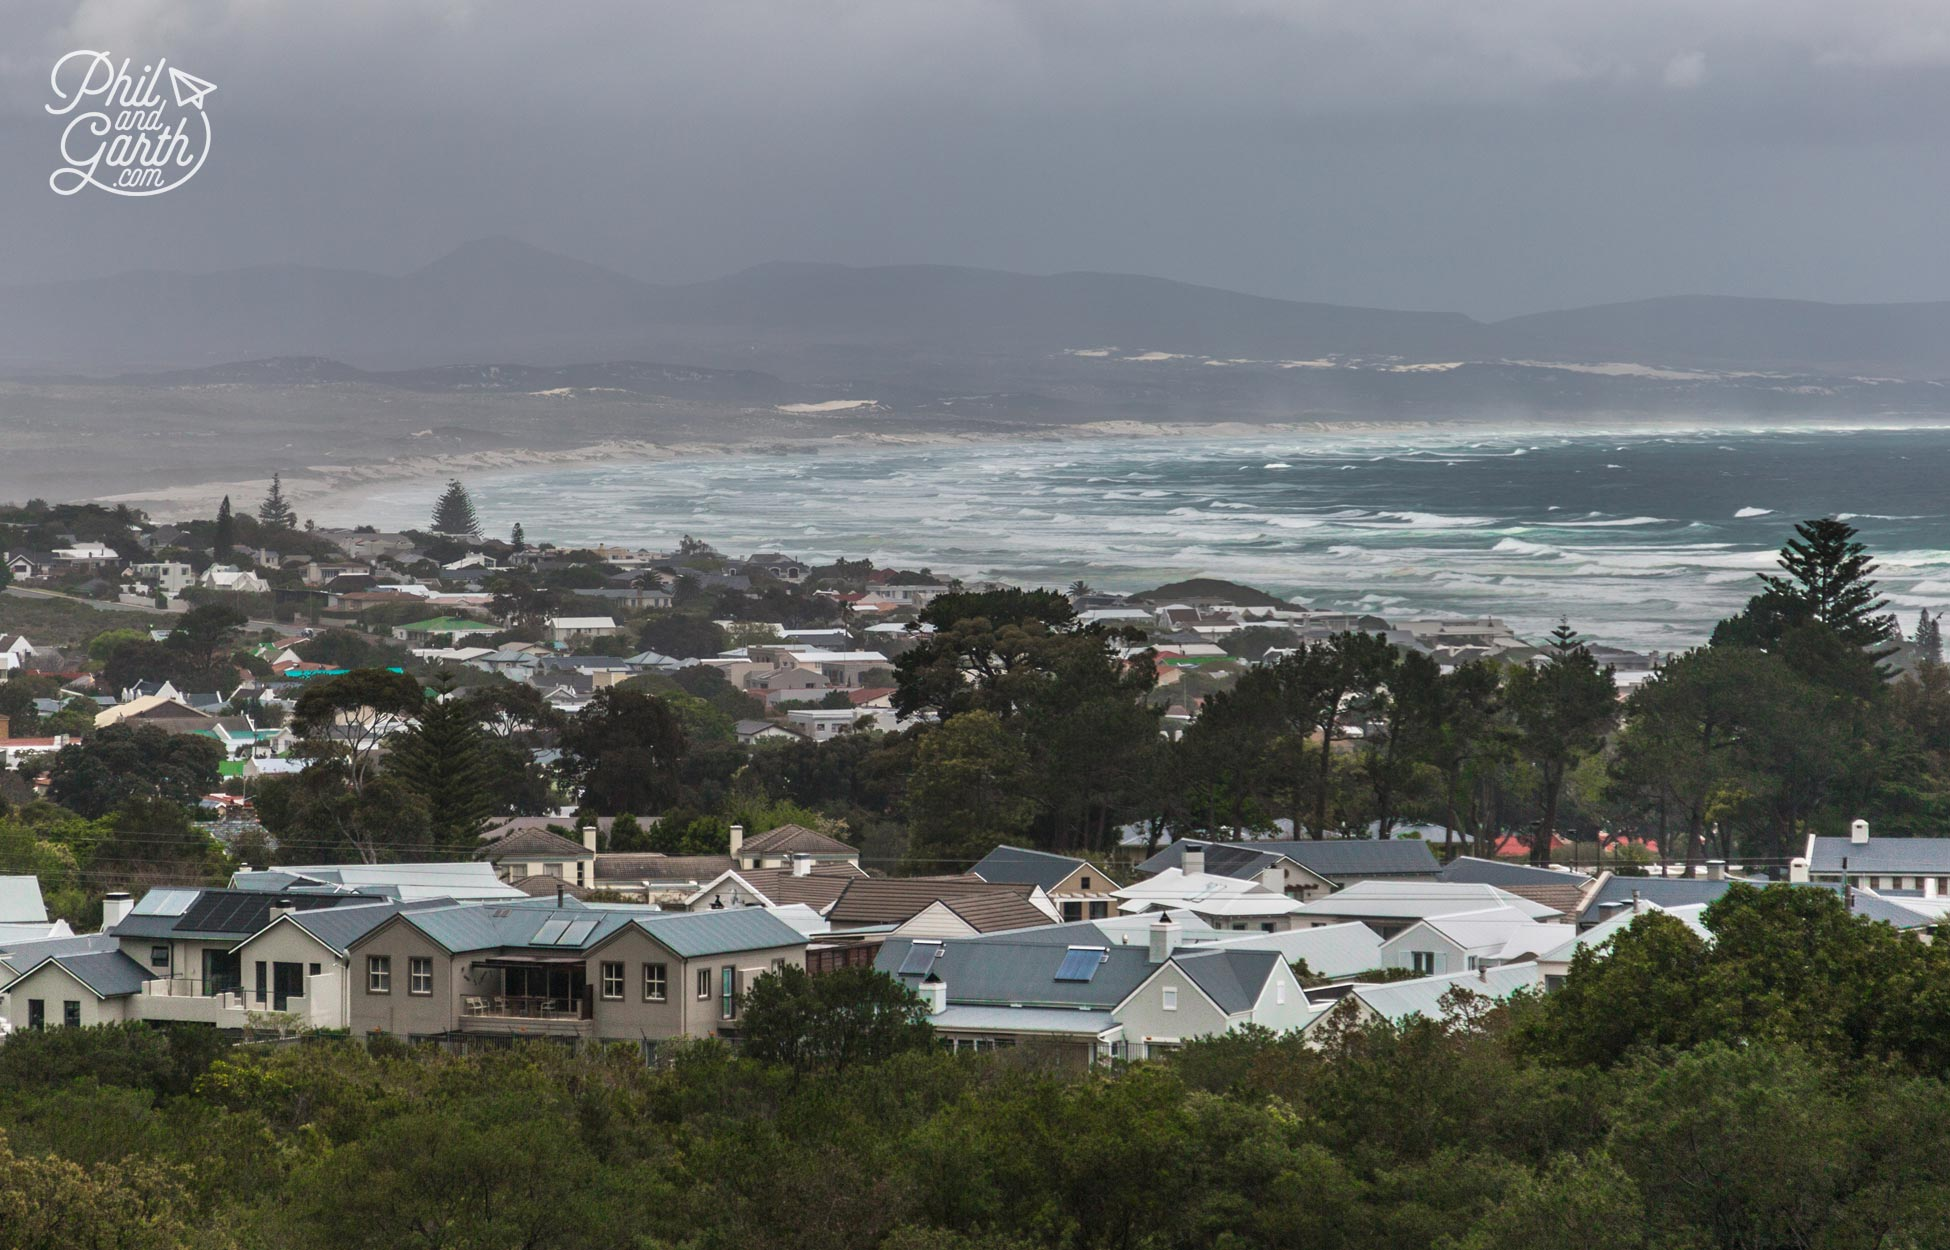 Great views across Hermanus and the bay even on a miserable day